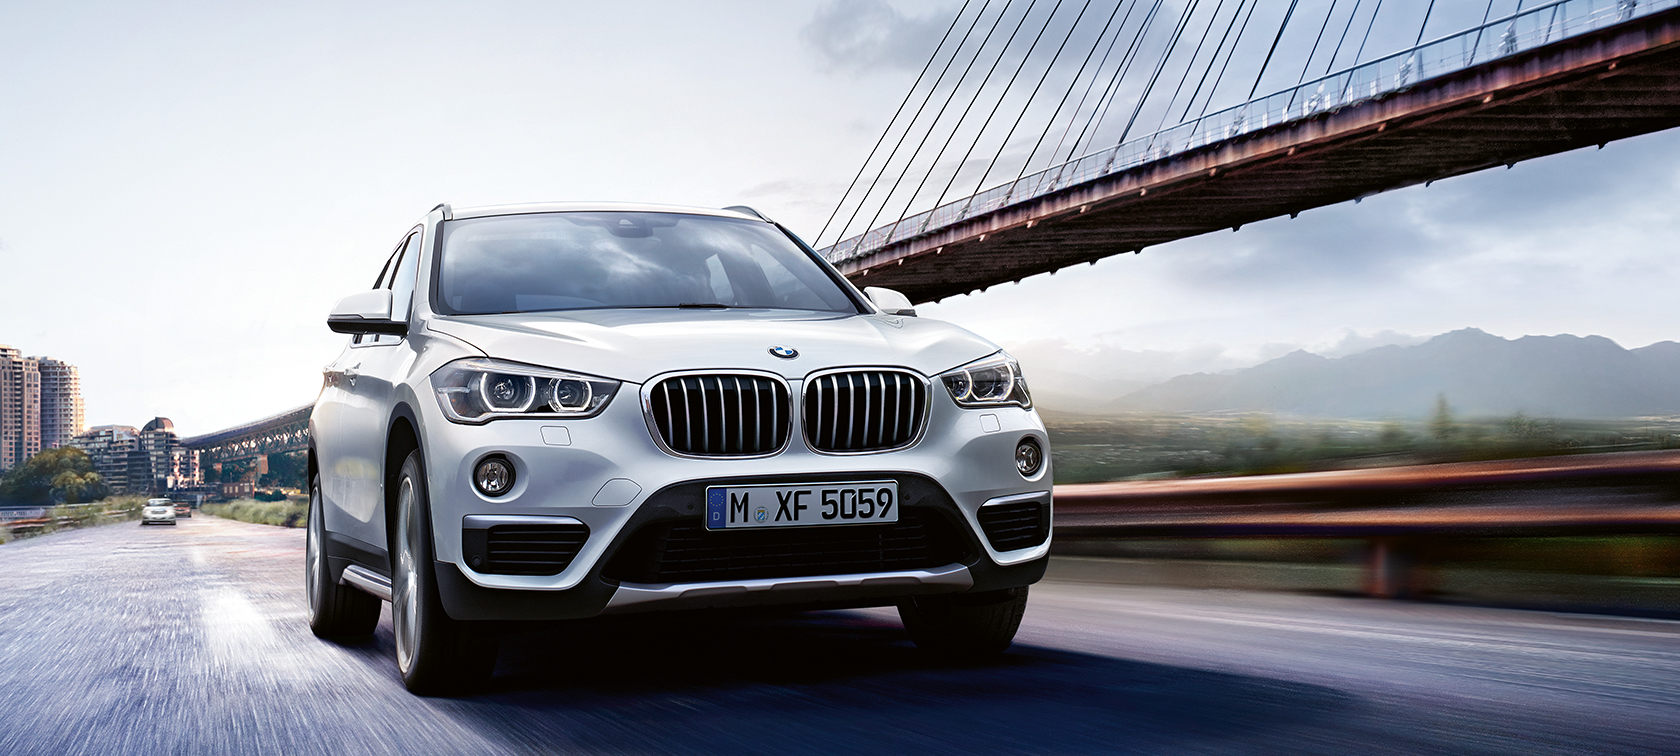 BMW engines - power, dynamics and speed